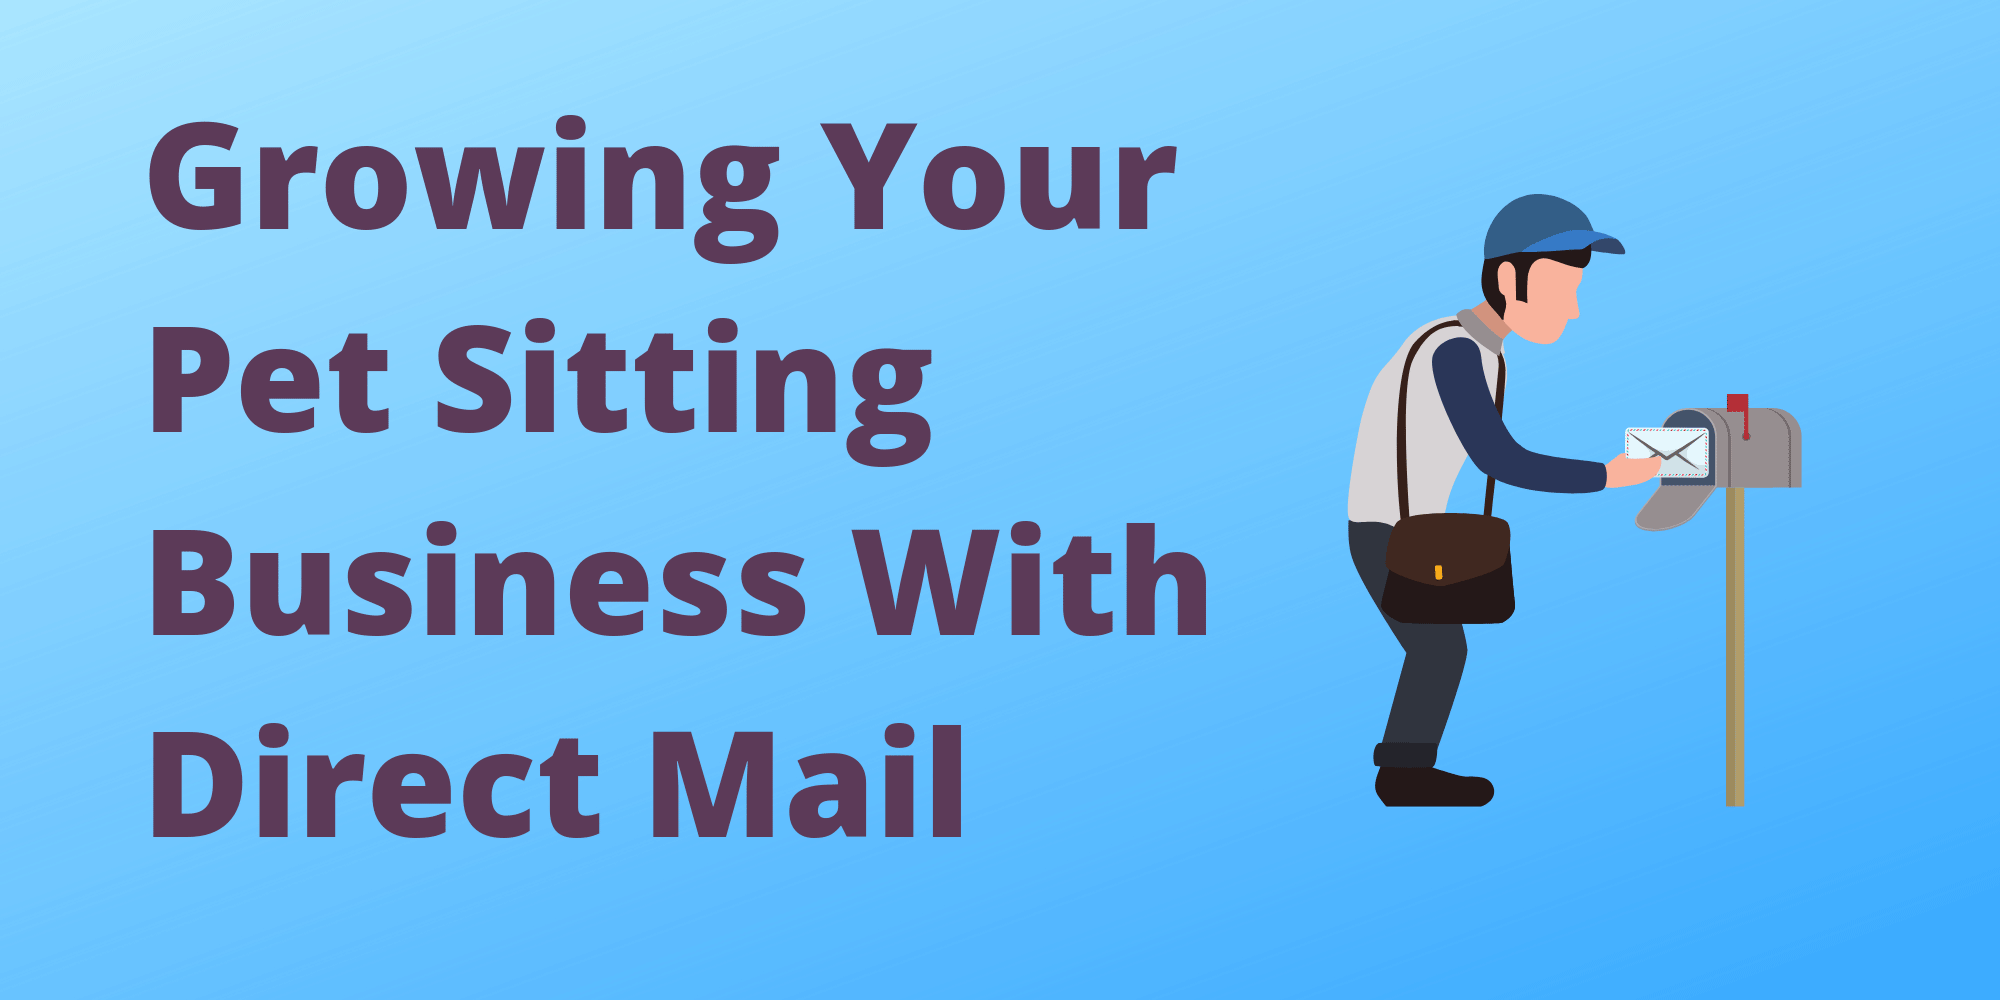 Image-Growing-Your-Pet-Sitting-Business-With-Direct-Mail.png